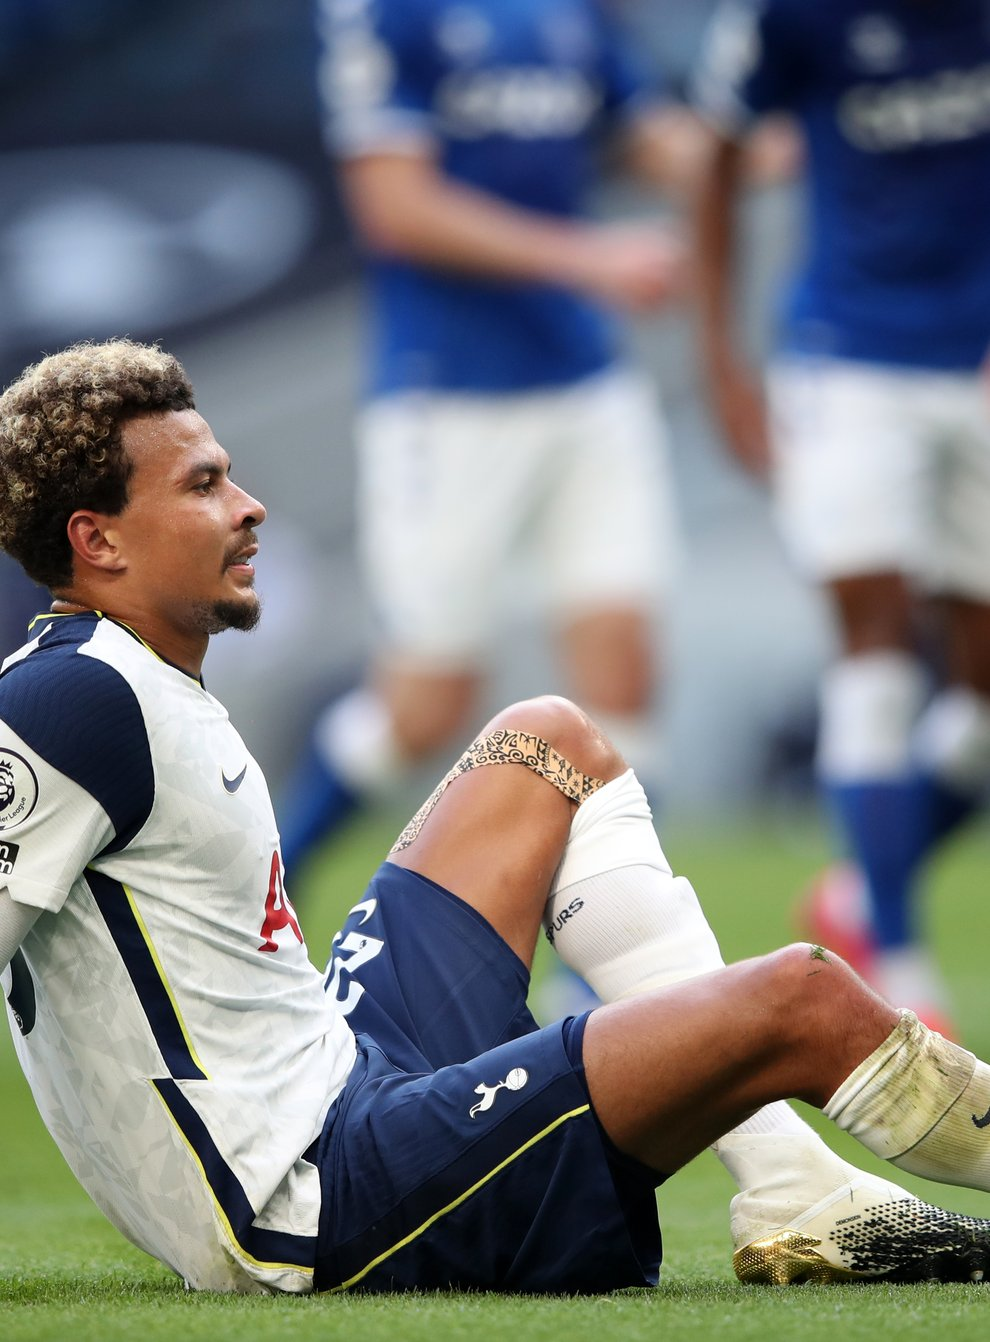 Alli was left out of Spurs' squad for their match with Southampton on Sunday afternoon